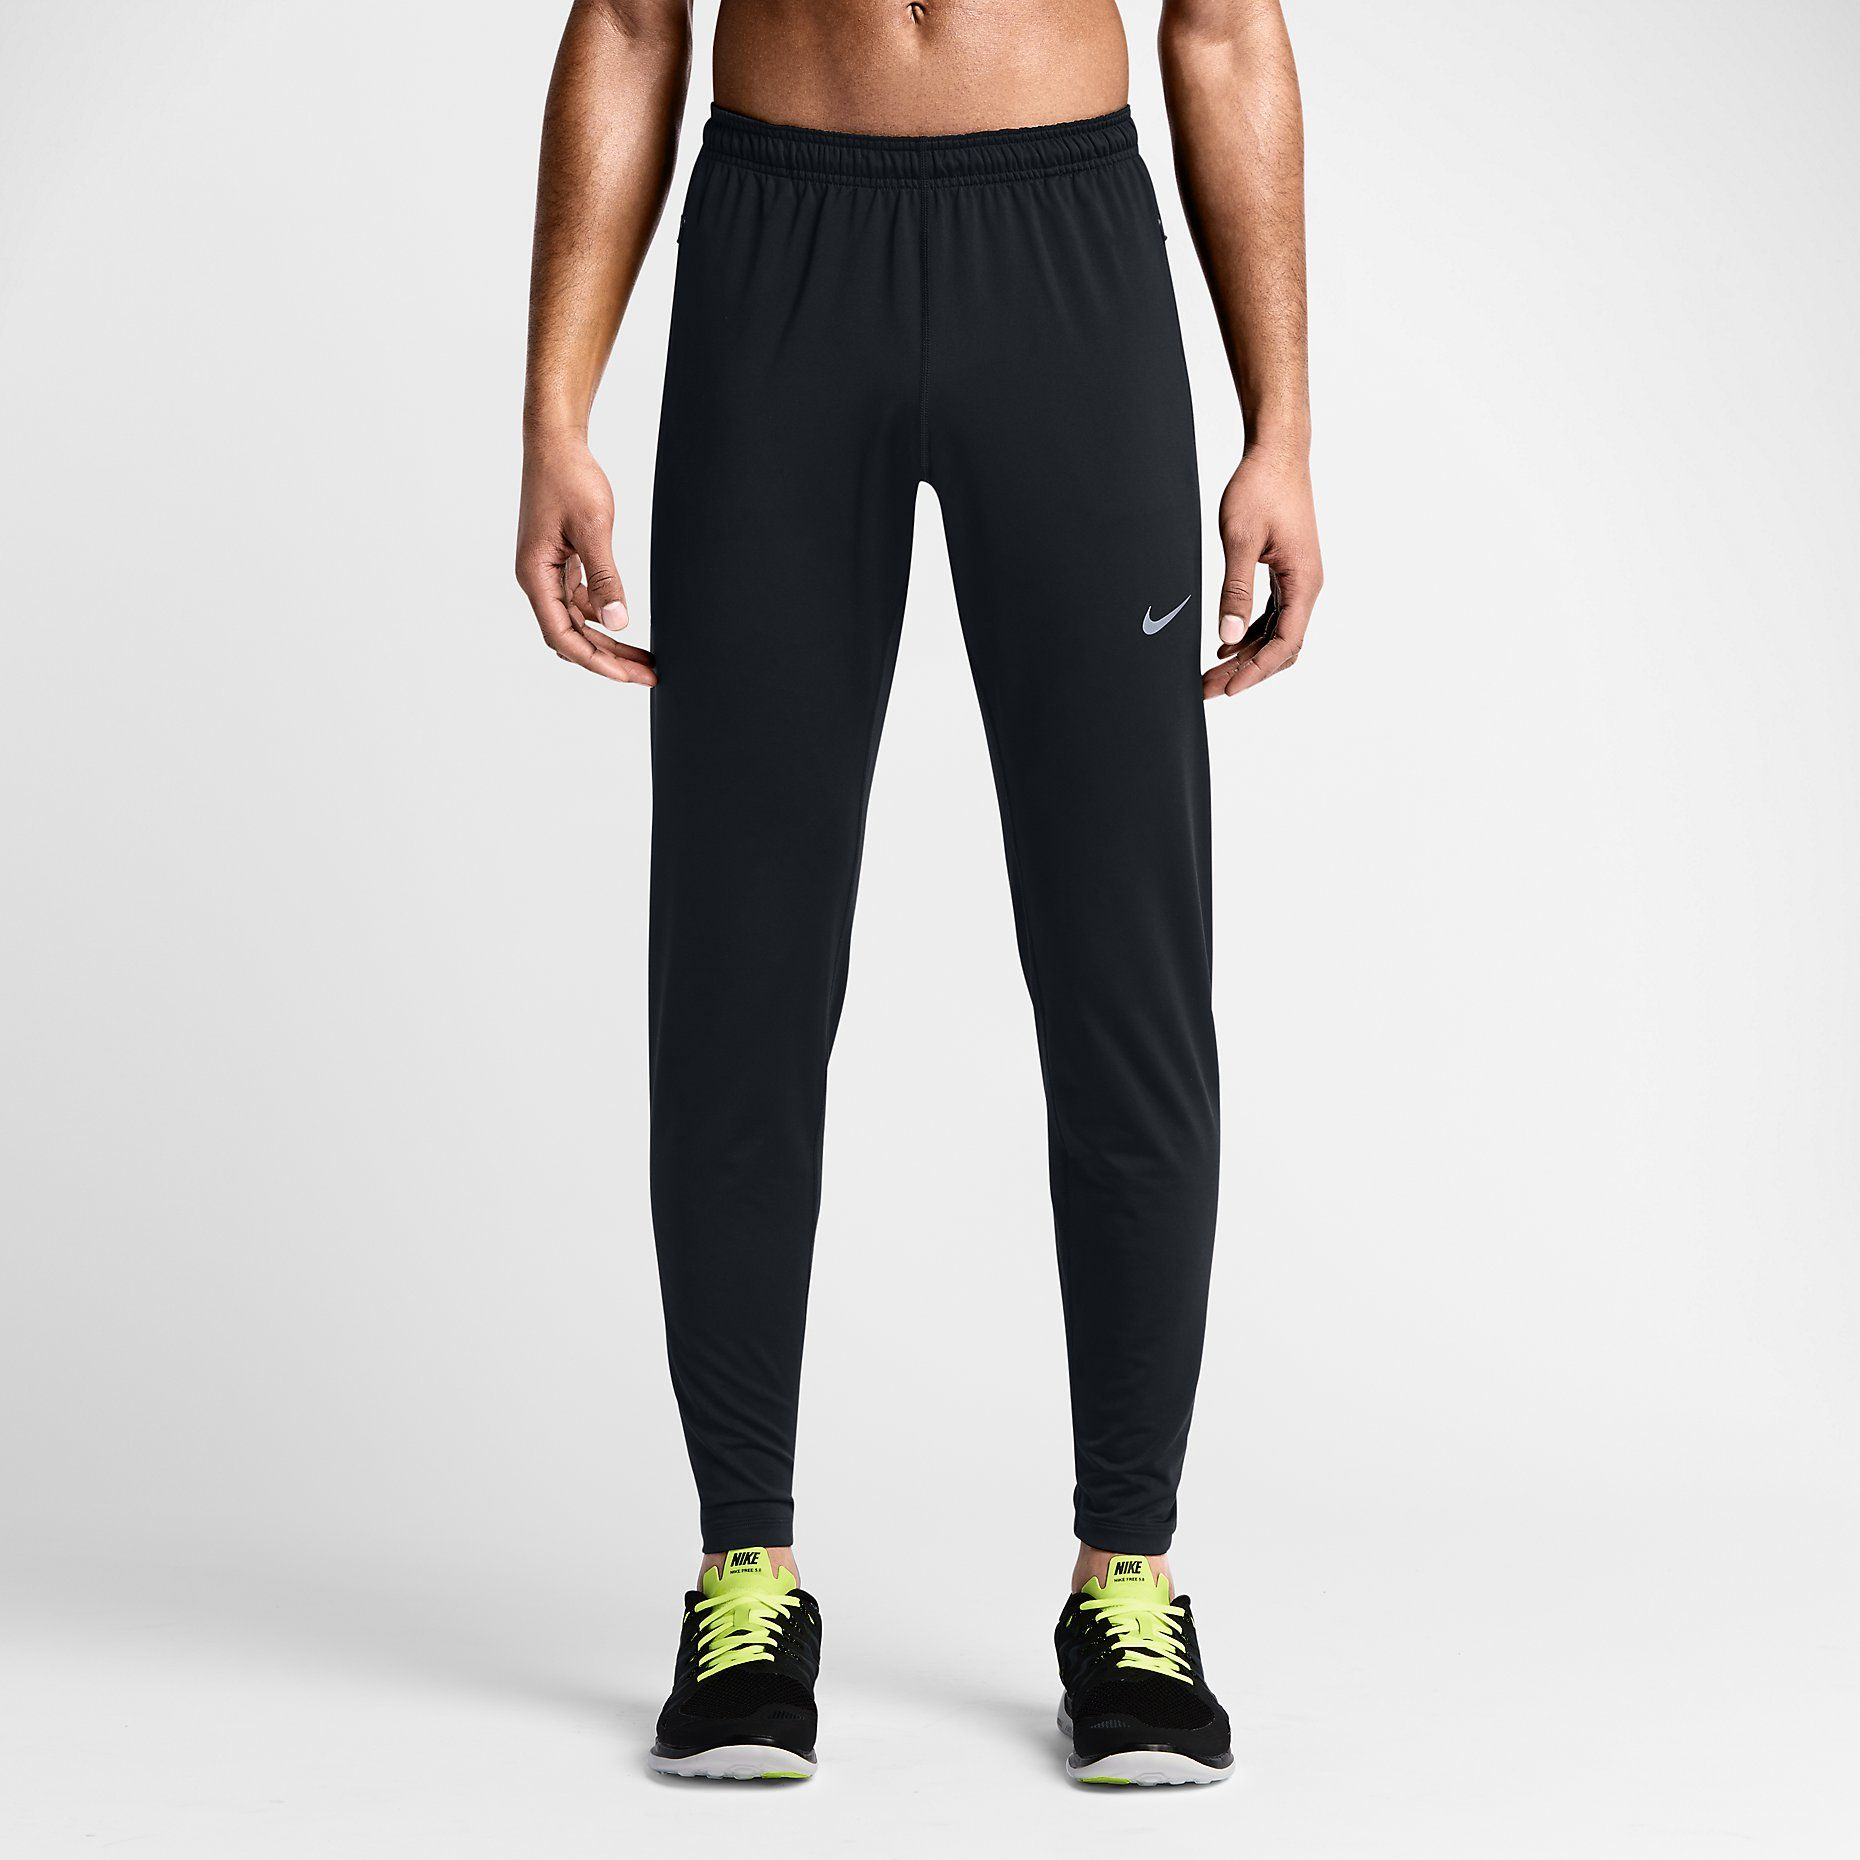 Nike Y20 Track Men's Running Pants.